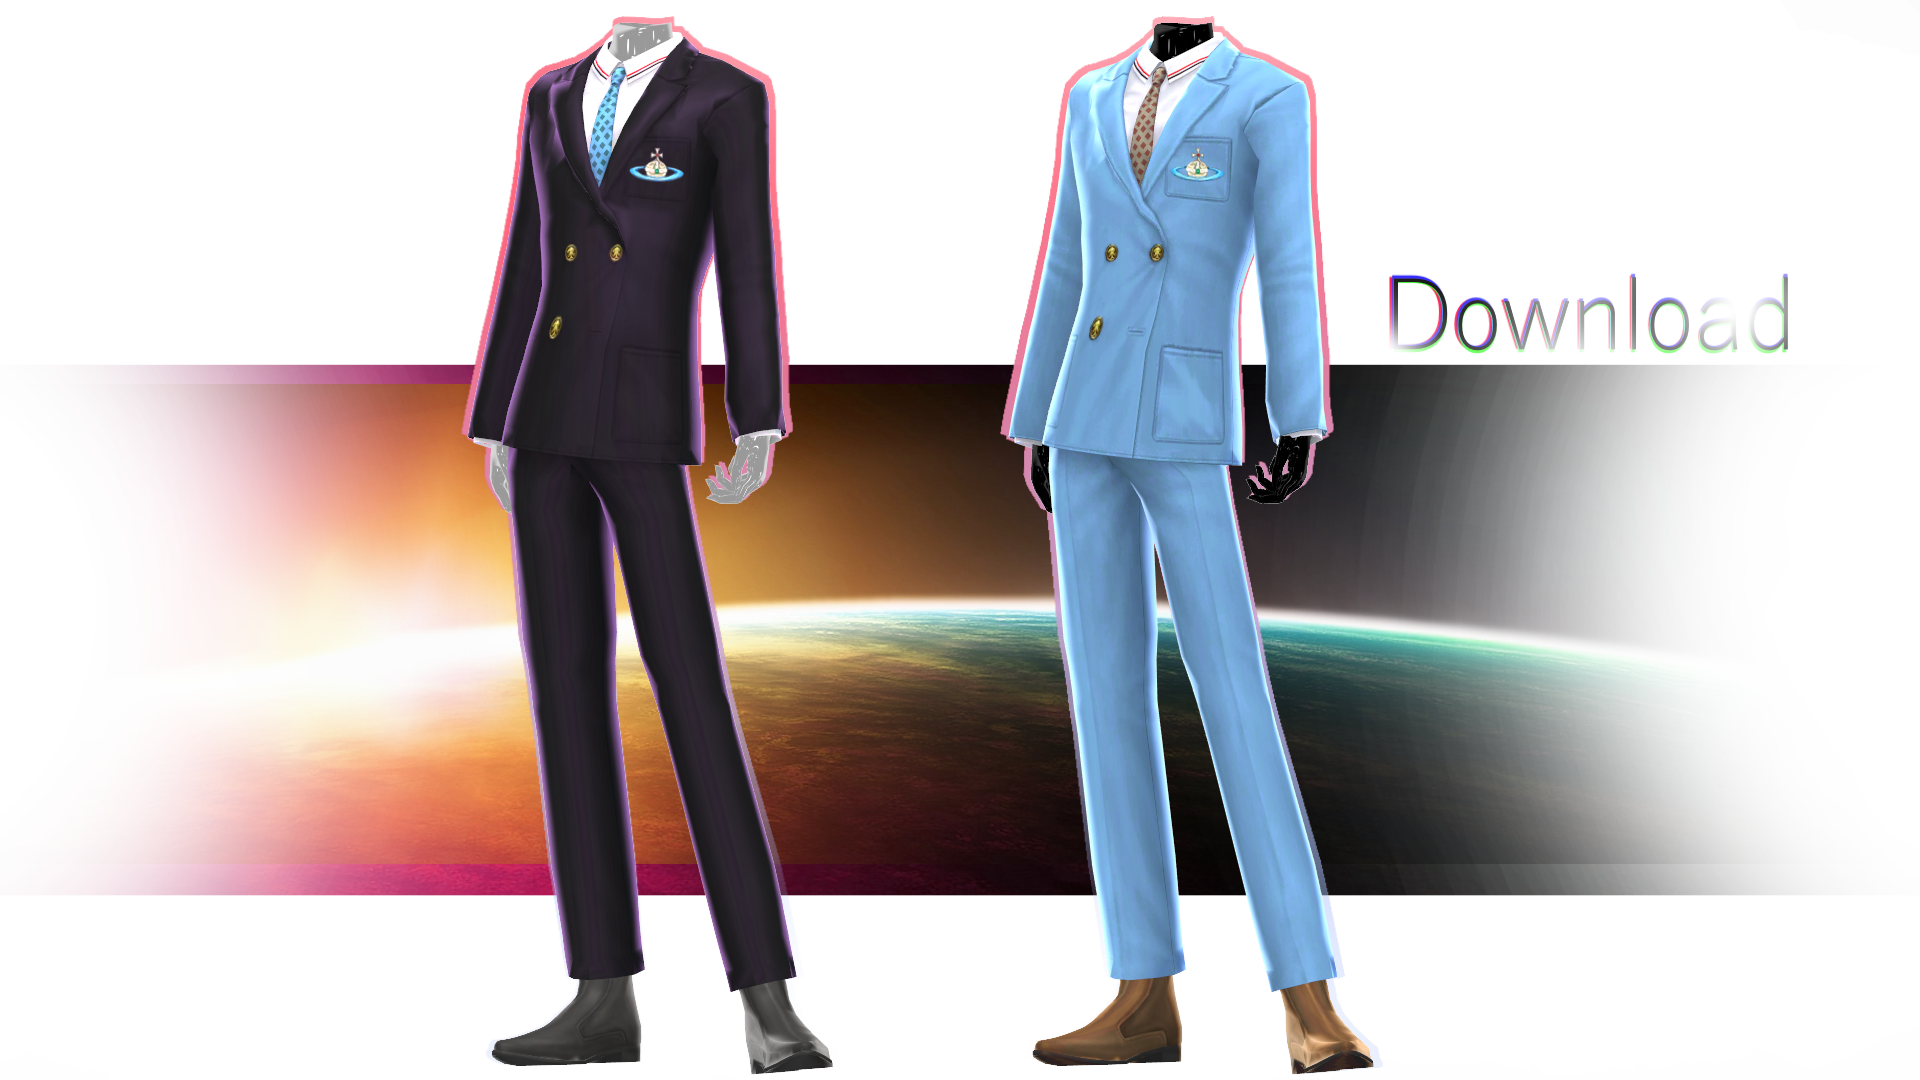 Tda Fitted G Dragon Suits Download By Nephnashine P On Deviantart